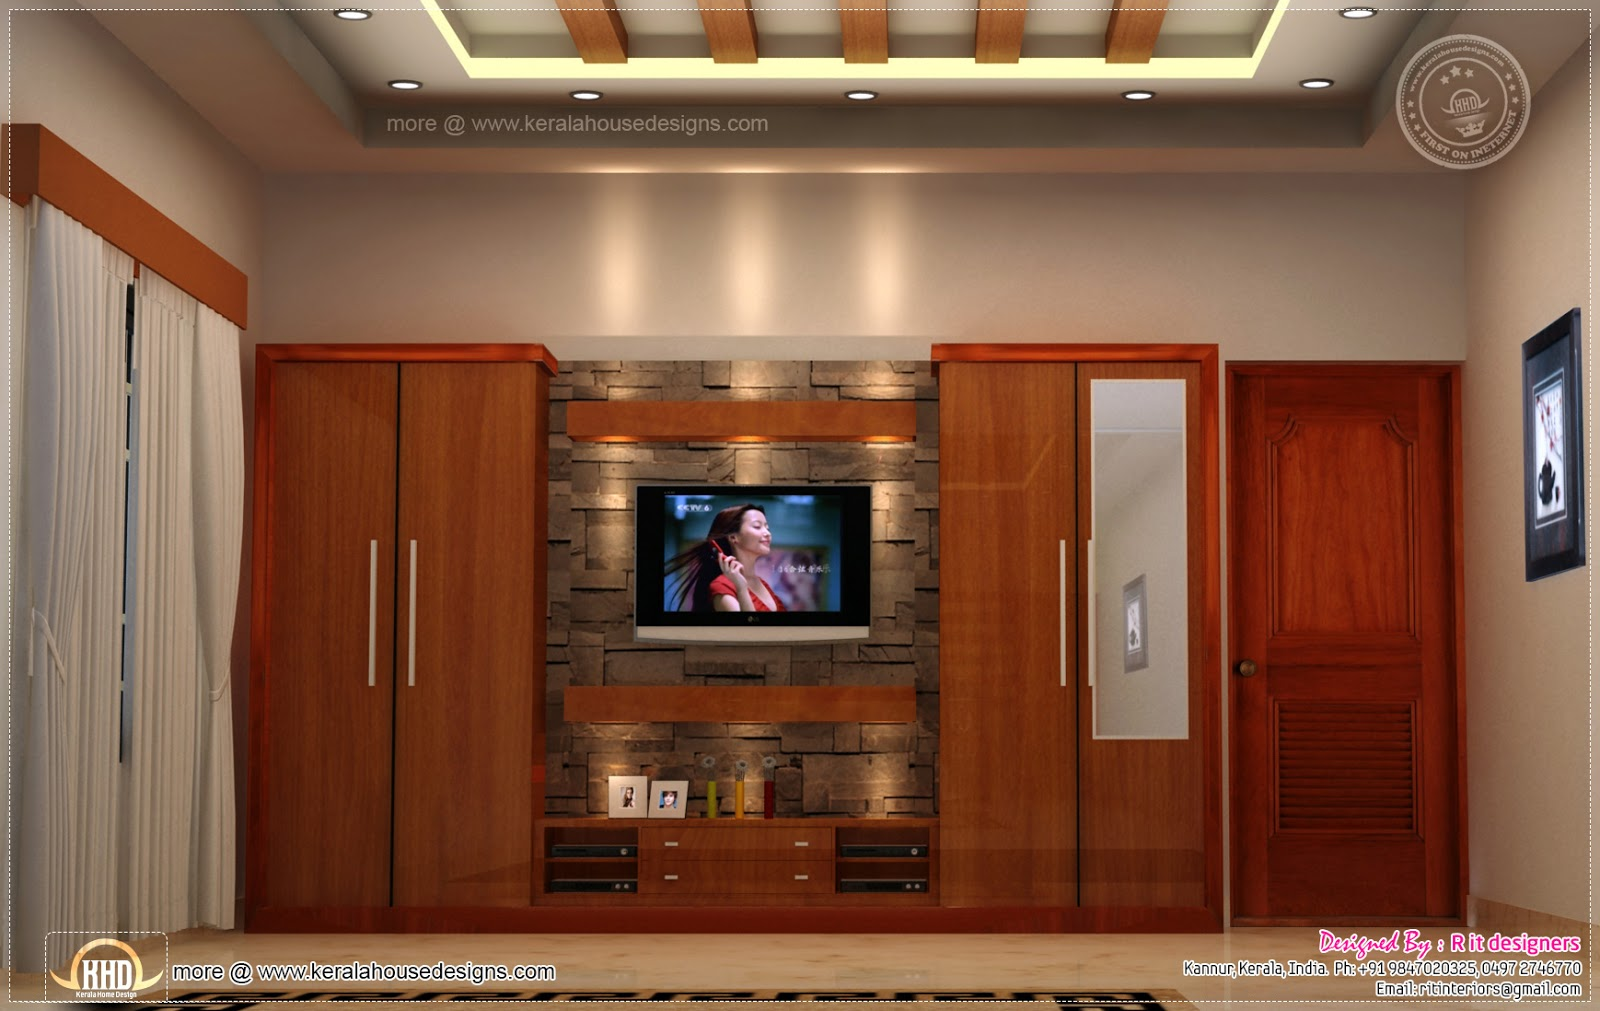 Home interior designs by Rit designers Kerala home design and